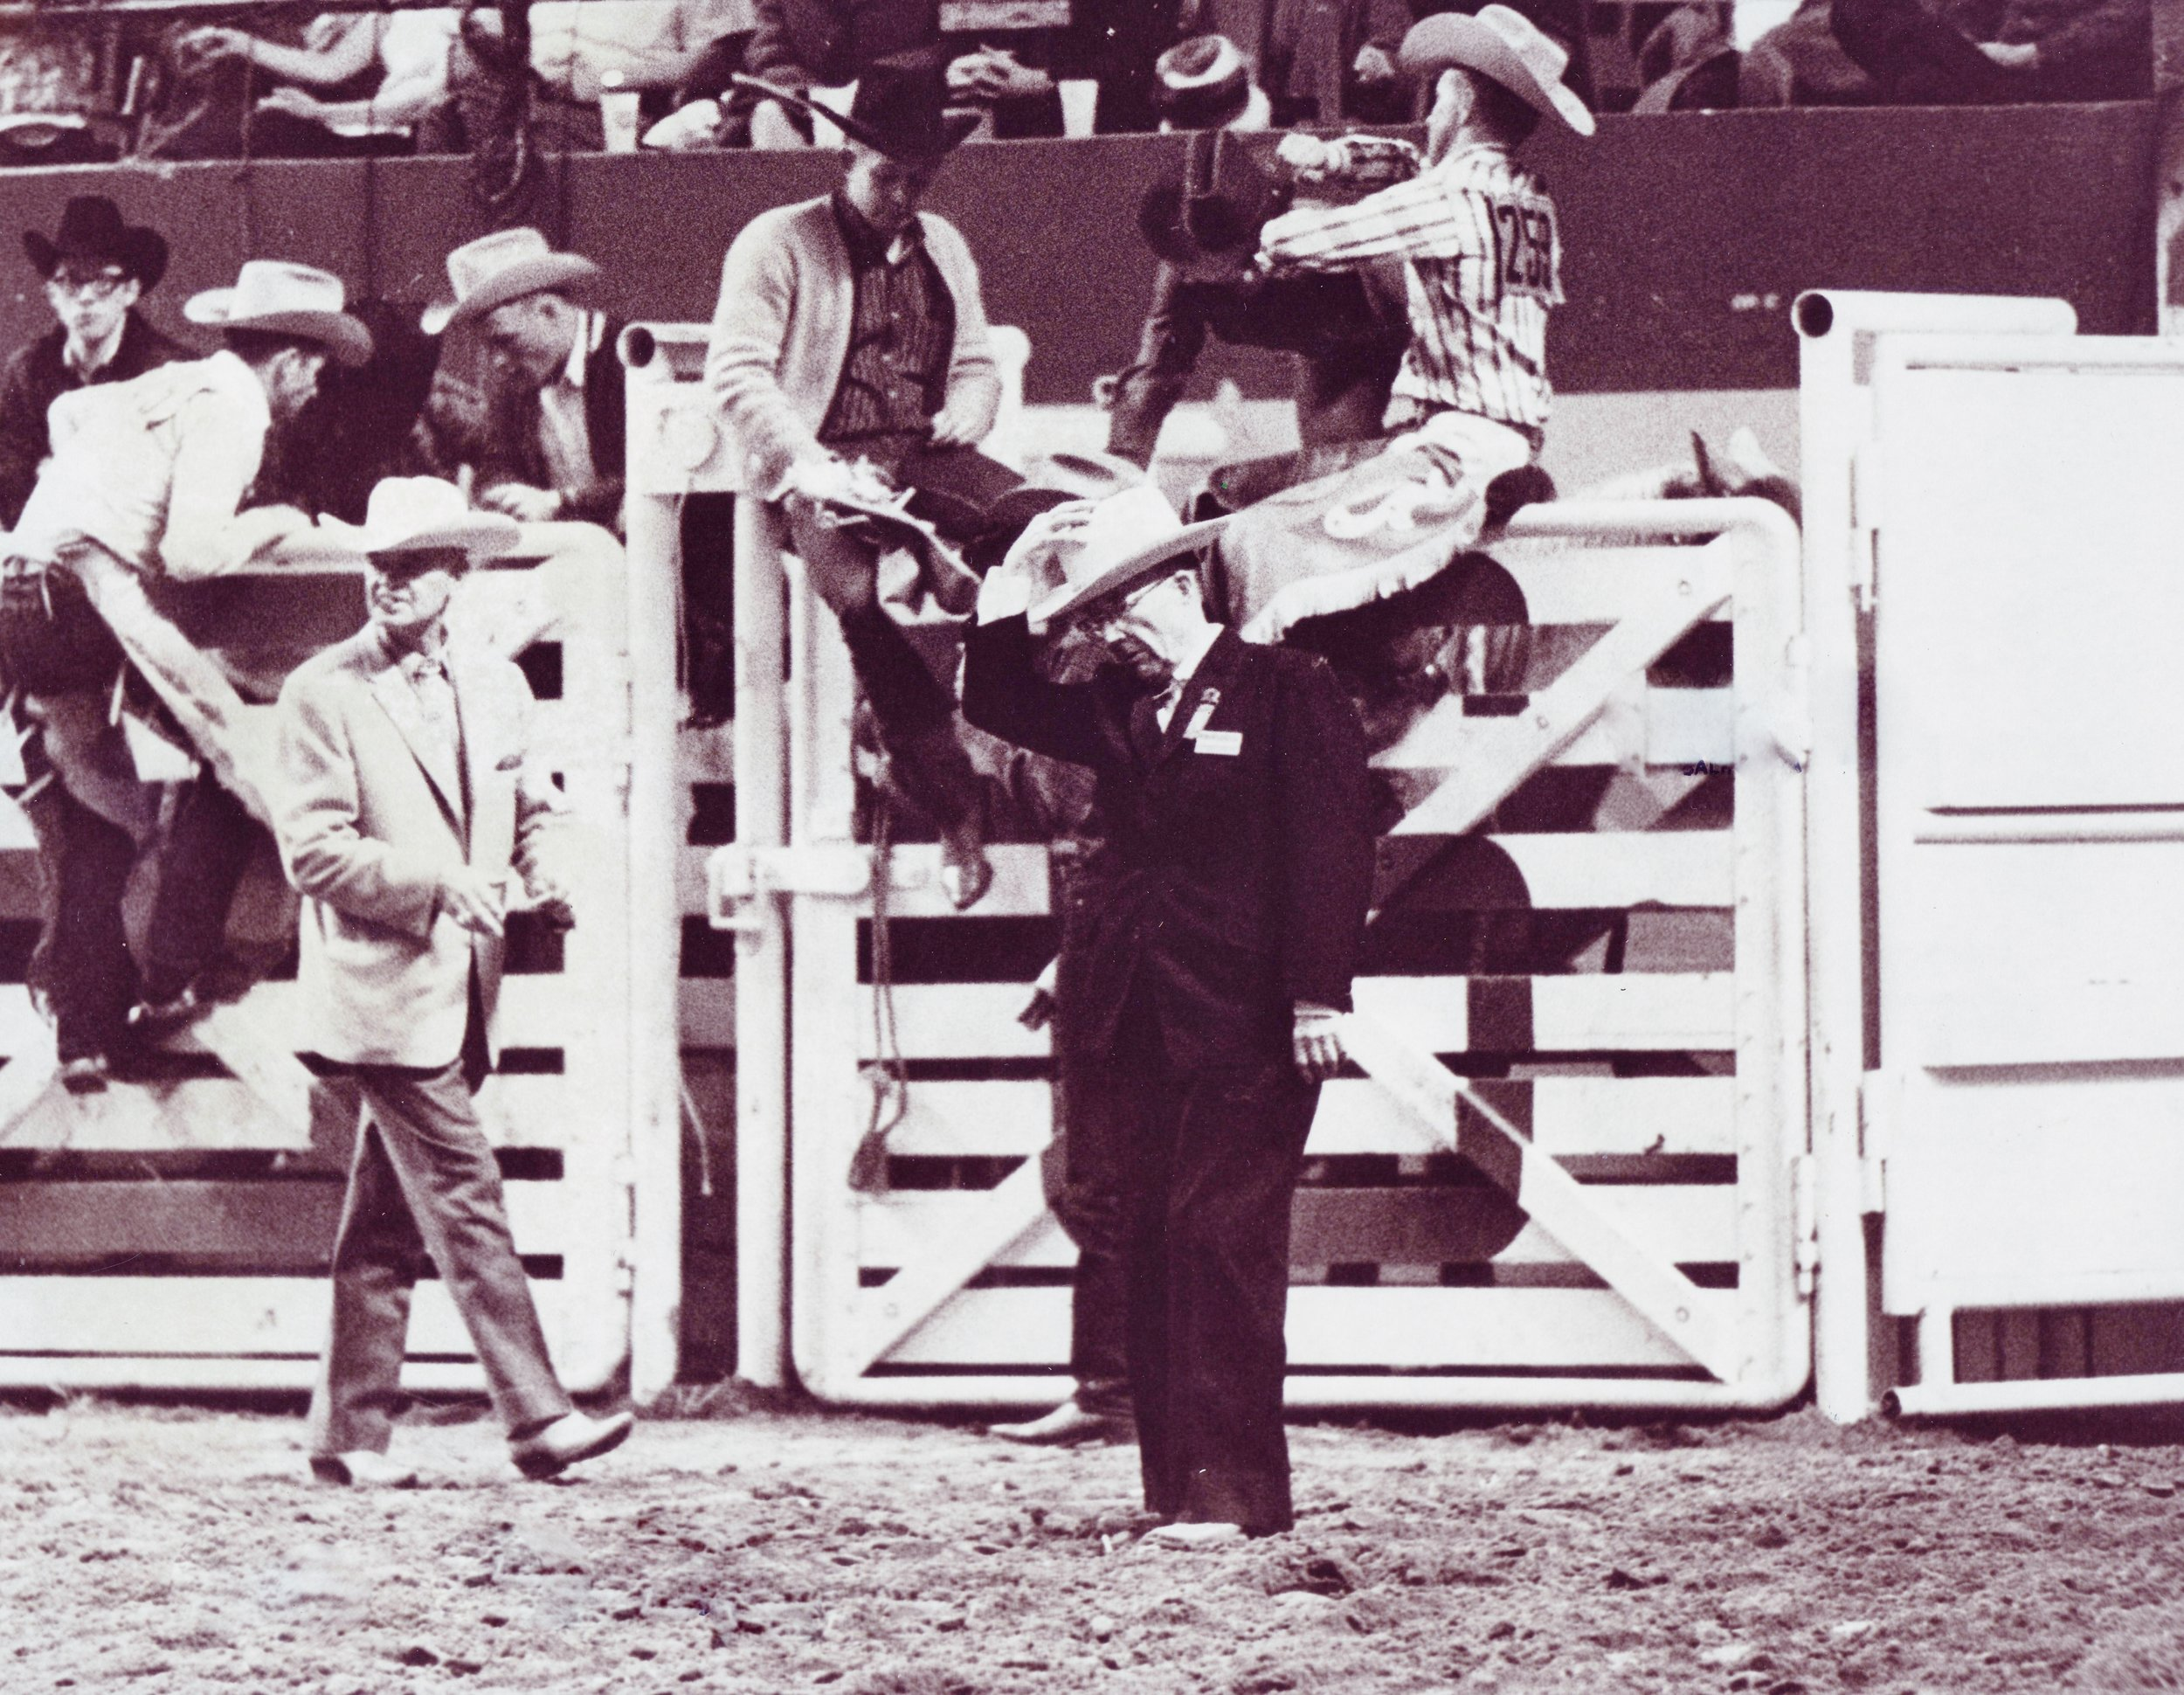 Westernaires founder, Elmer E. Wyland, gives a tip of the hat in the arena after a Westernaires performance at the 1967 National Western Stock Show.